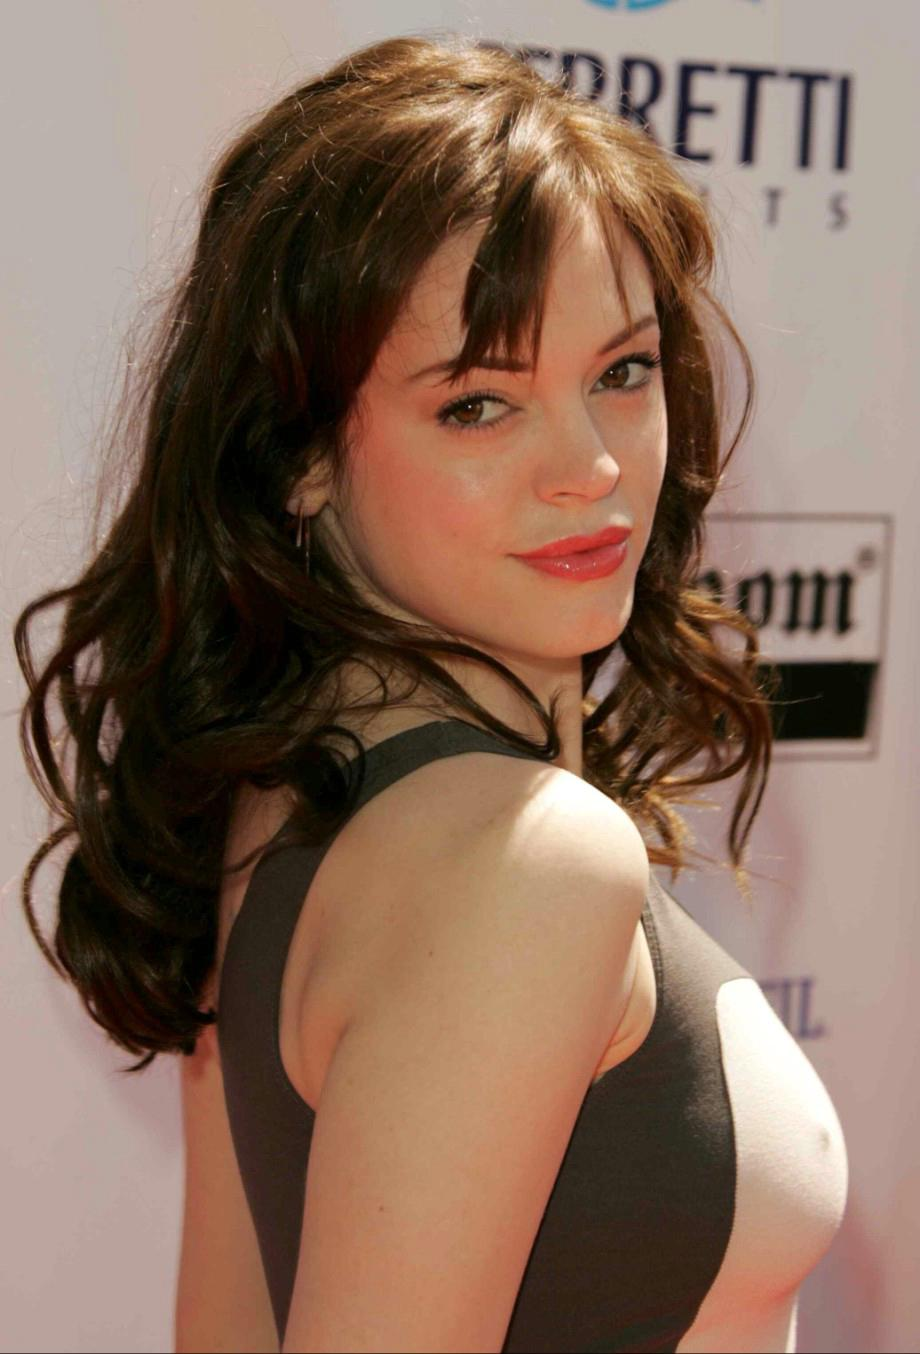 Rose Mcgowan Profile And Latest Pictures 2013 Hollywood Stars Hd Wallpapers